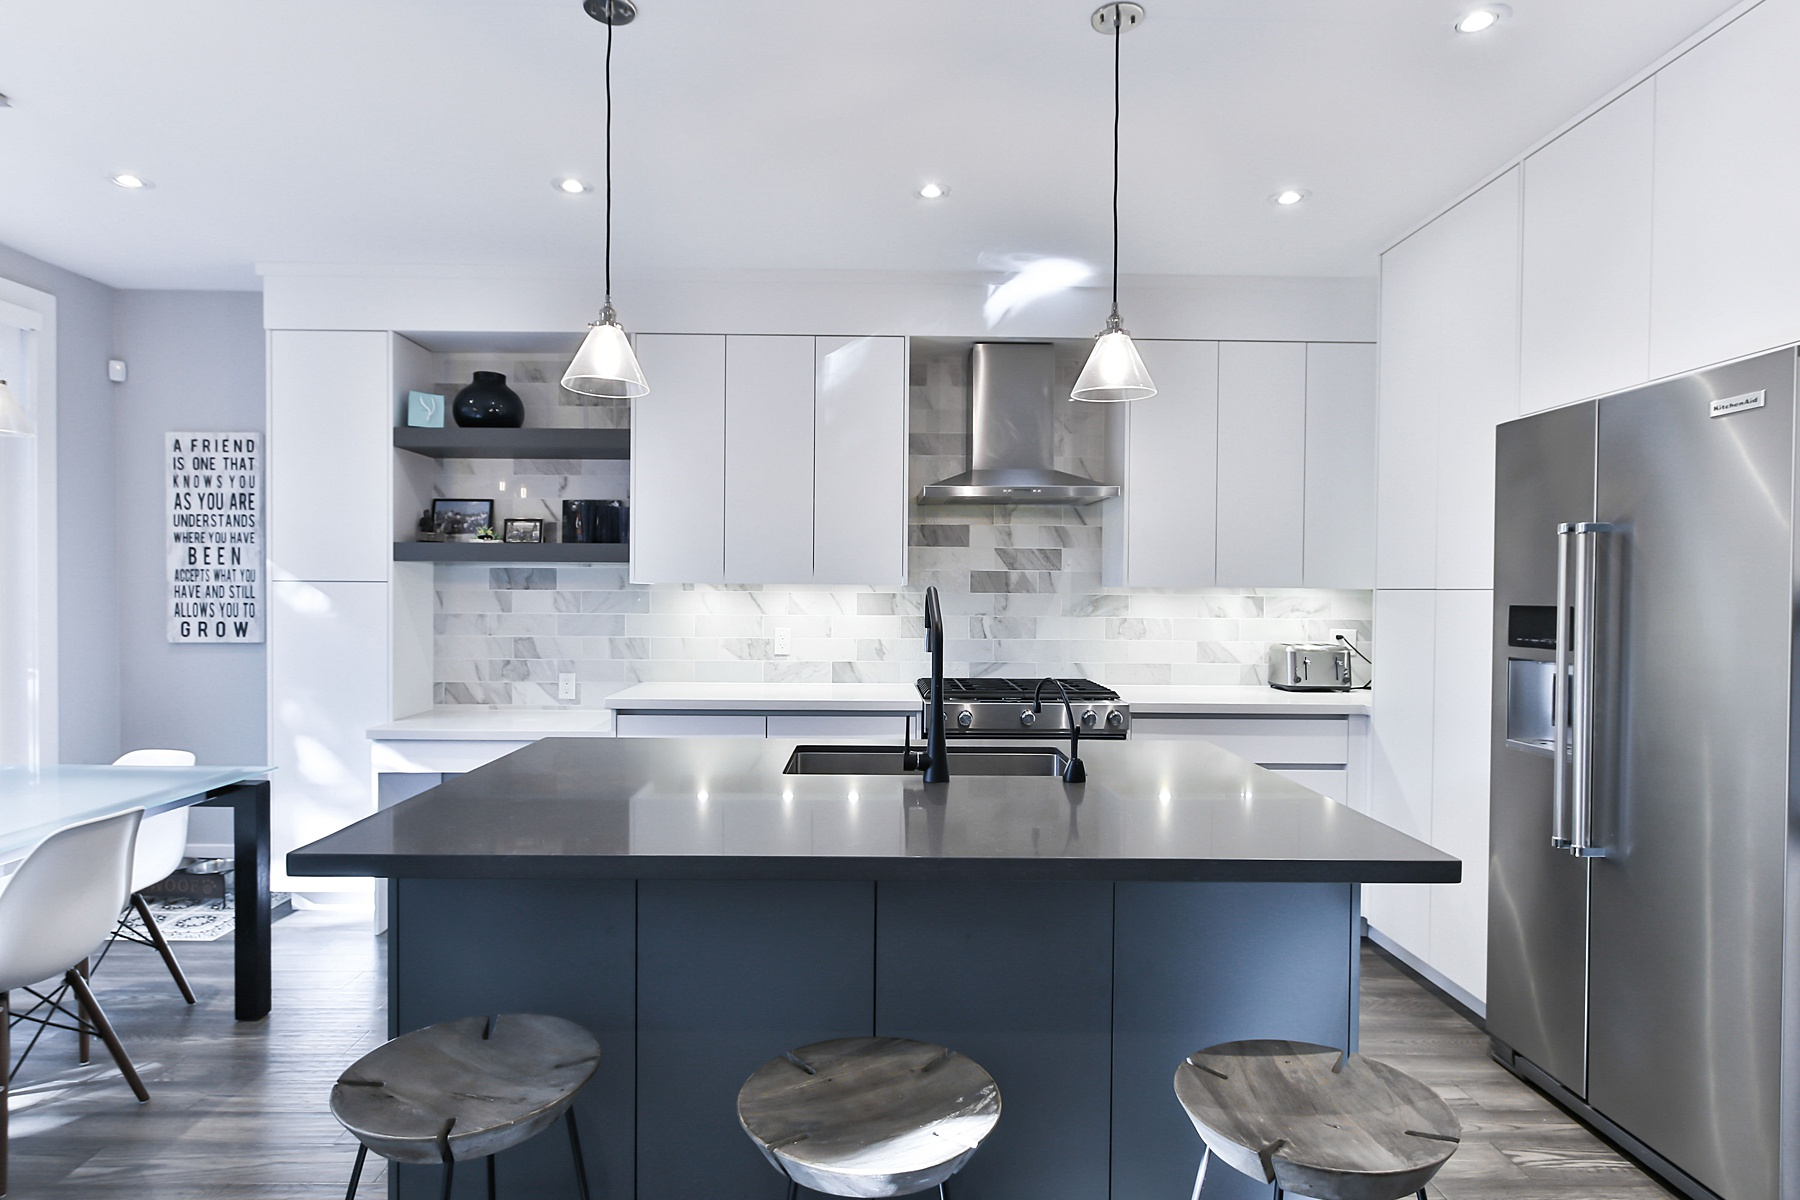 Kitchen with two-tone cabinets- white cabinets and countertop along the wall and dark blue cabinets and black countertops featured on the island- 2021 Kitchen Design Trends